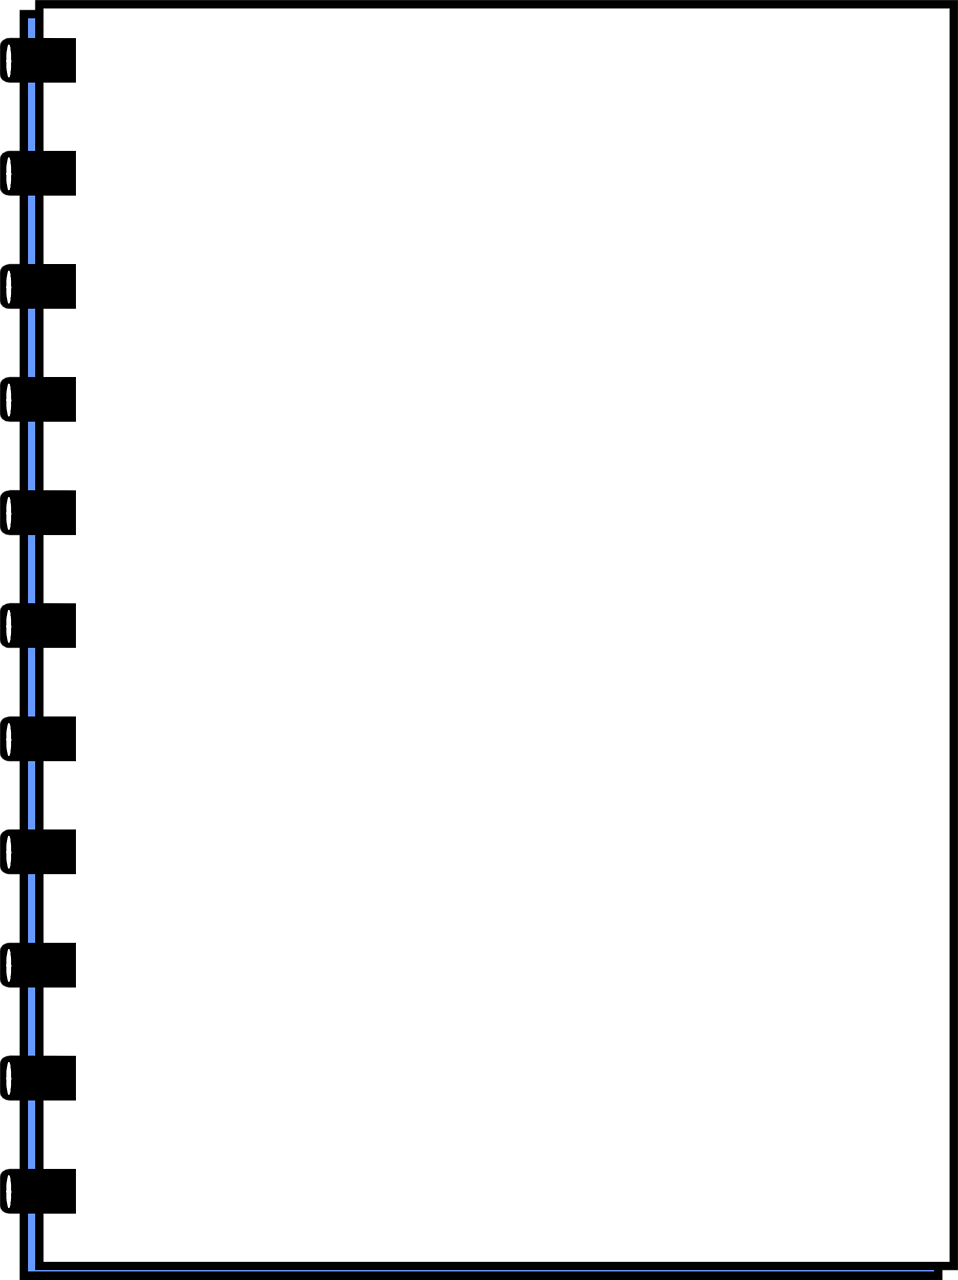 Illustration of a blank notebook frame border.